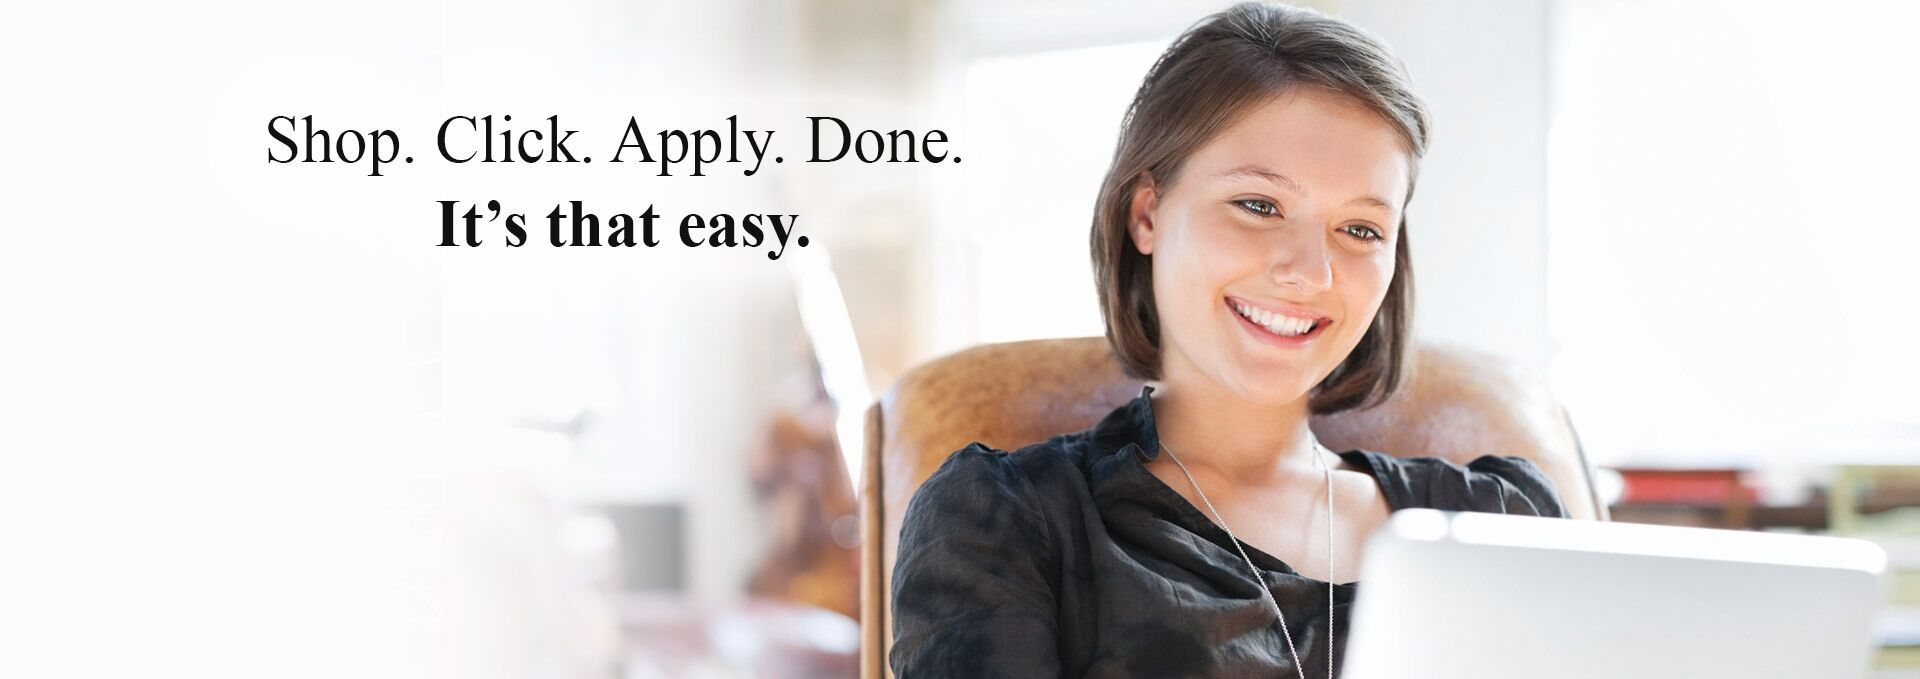 Shop. Click. Apply. Done. It's that easy at Autos of Dallas